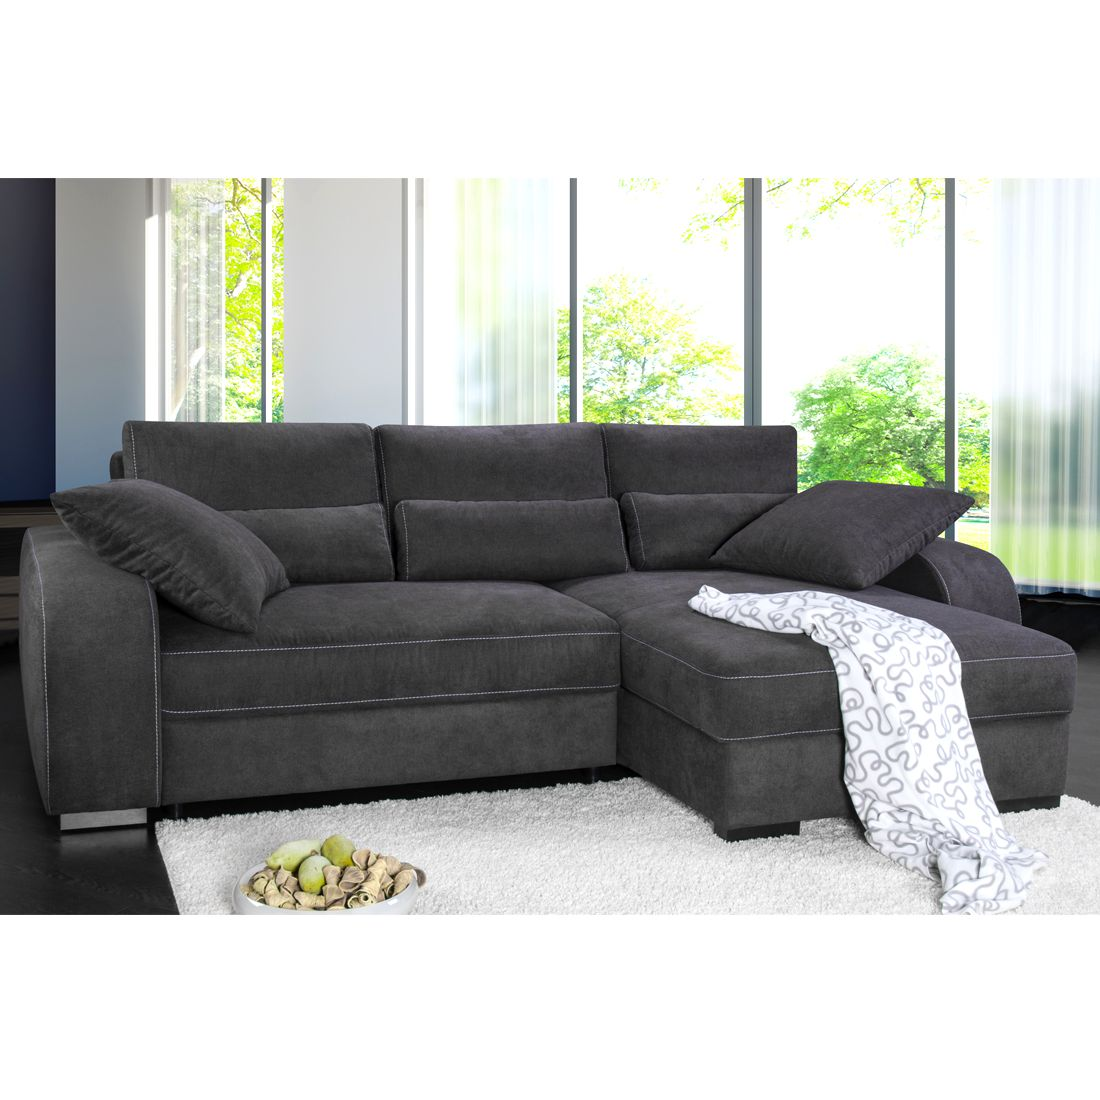 8 sparen boxspring ecksofa comox von fredriks nur cherry m bel home24. Black Bedroom Furniture Sets. Home Design Ideas